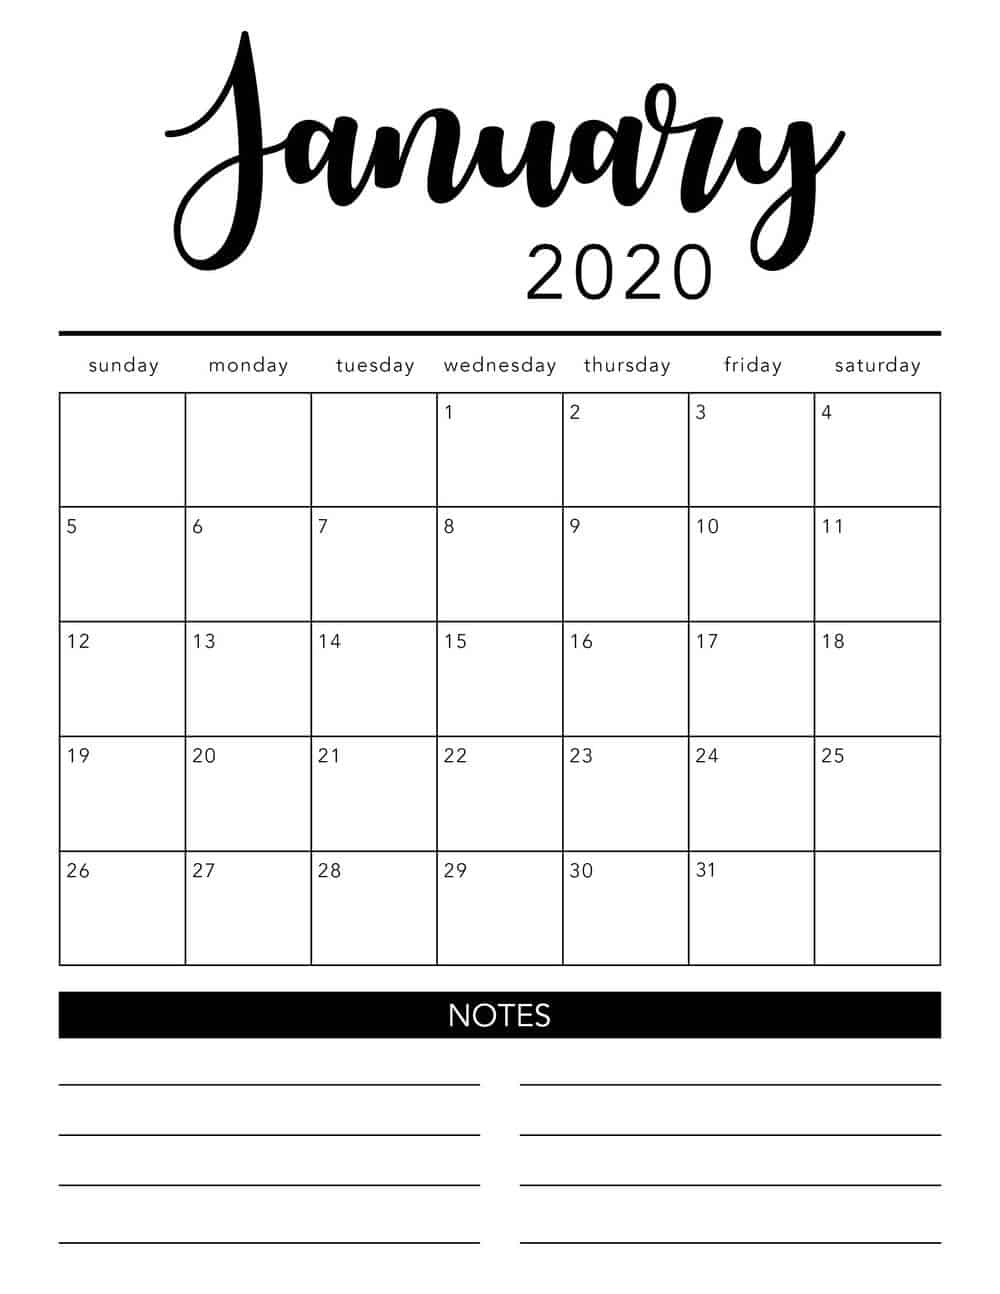 Free 2020 Printable Calendar Template (2 Colors!) - I Heart regarding Free Printable 2020 Calendars You Don't Have To Download